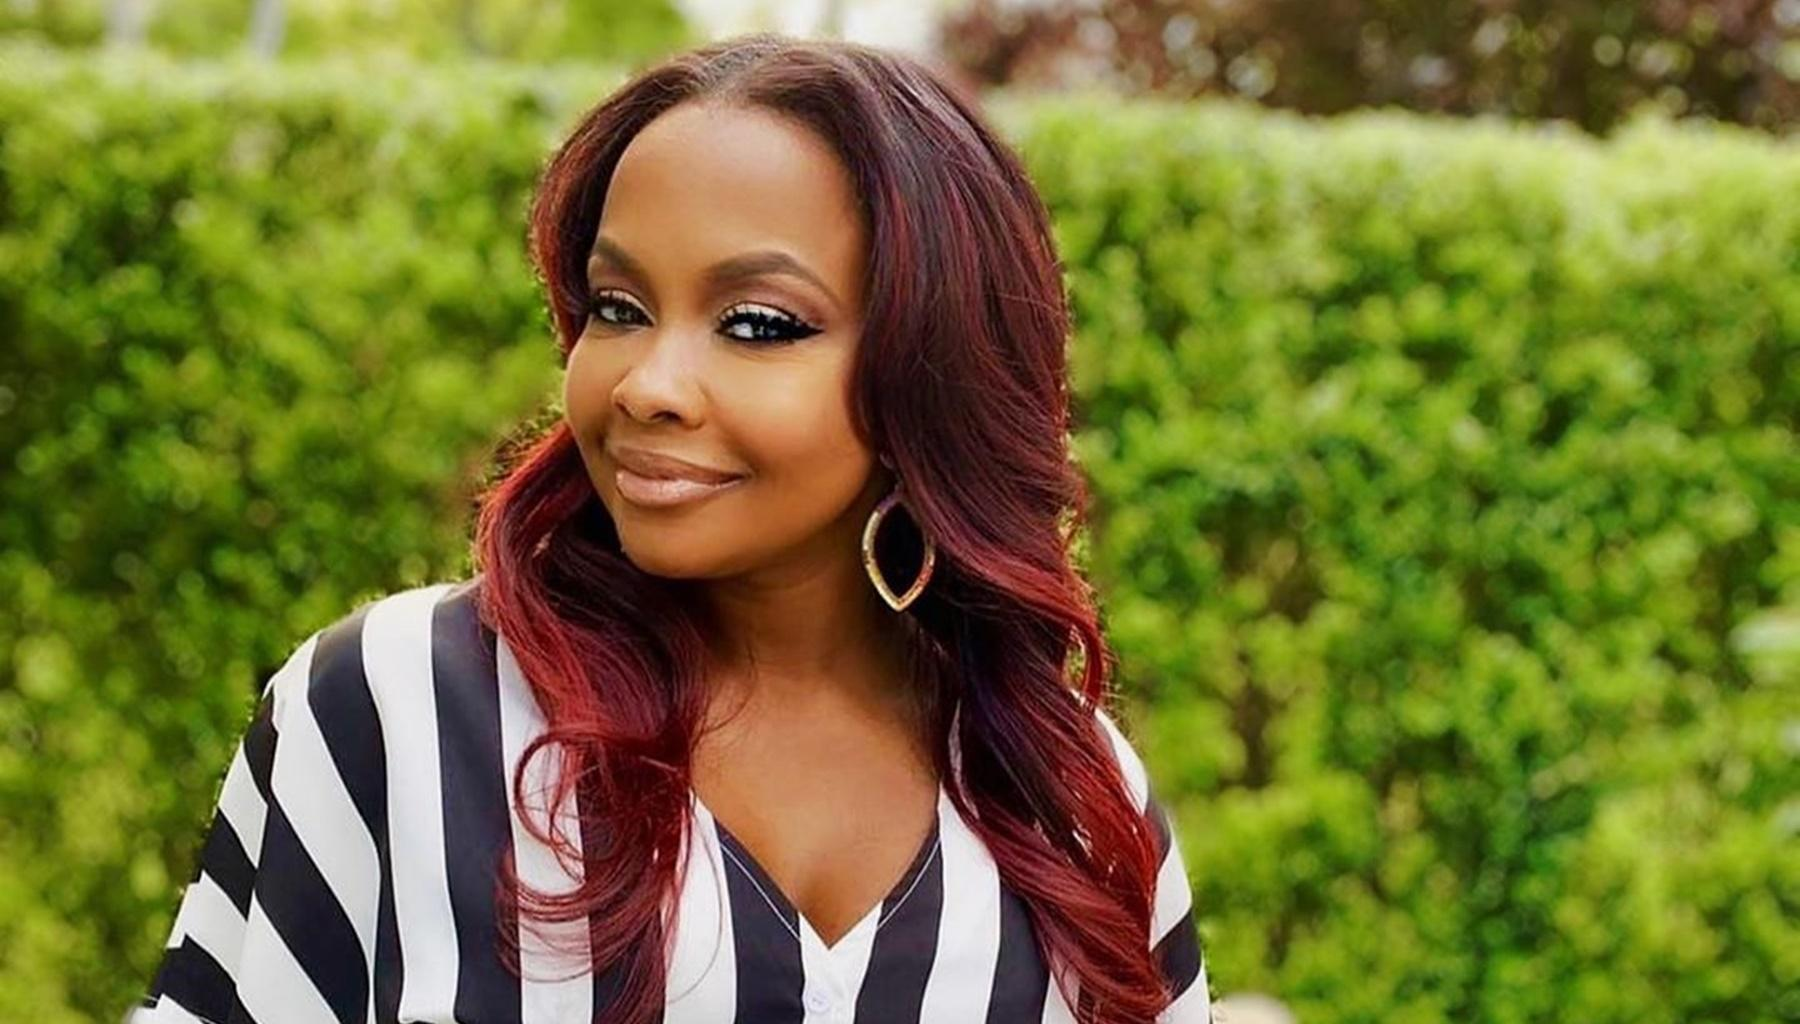 Phaedra Parks Shares Revealing Bathing Suit Photo And Is Unbothered By Wild Accusations Made By Ex-Husband Apollo Nida And Peter Thomas